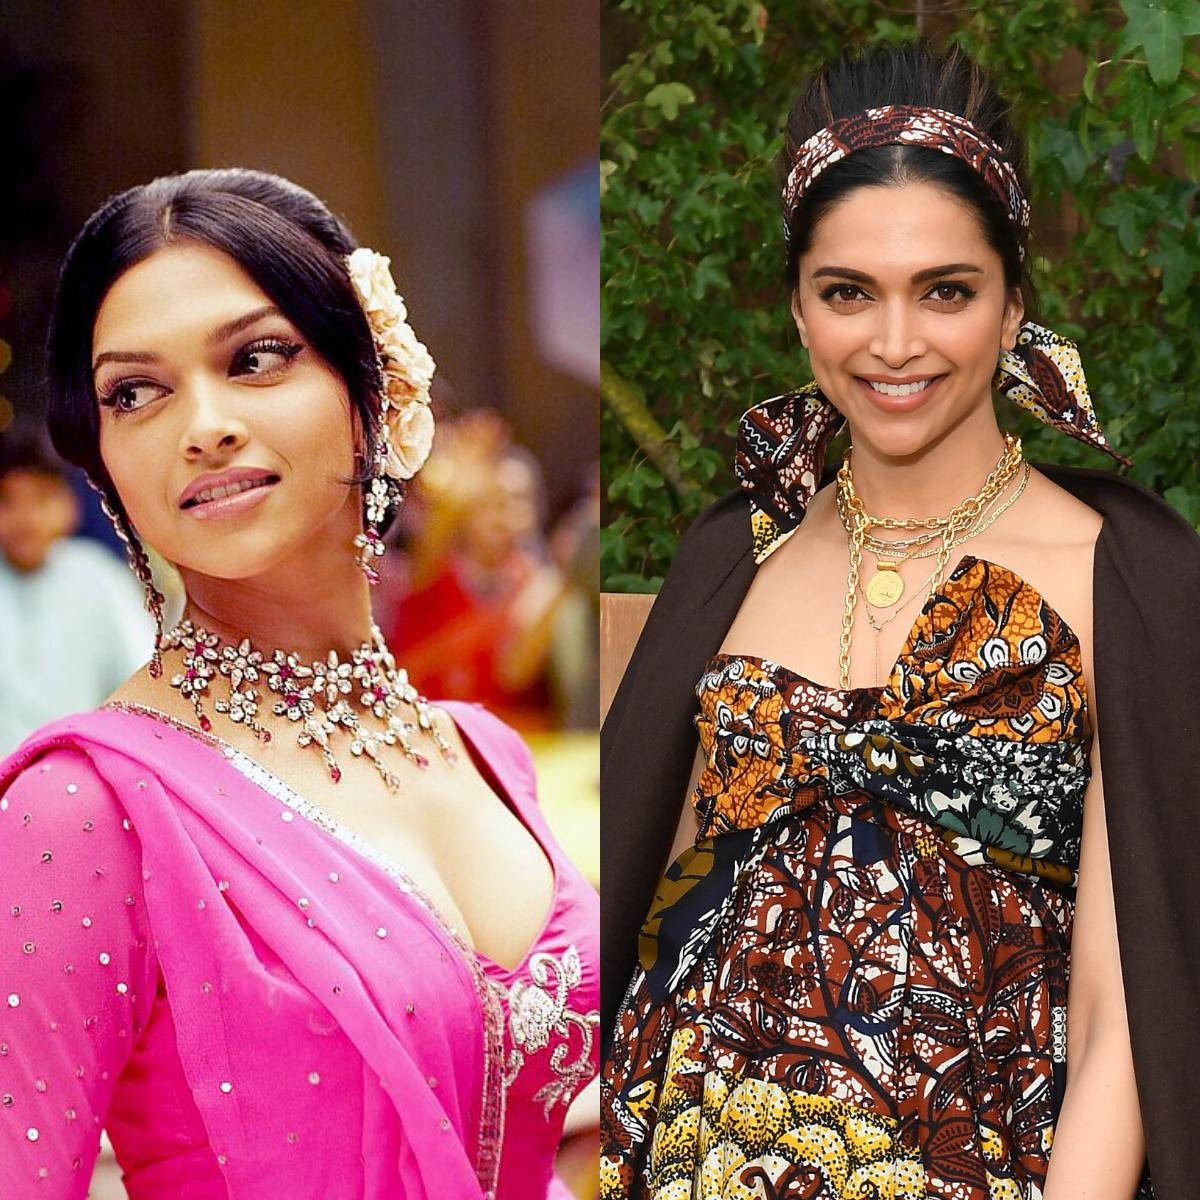 Deepika Padukone: From modelling to B town journey, check ...